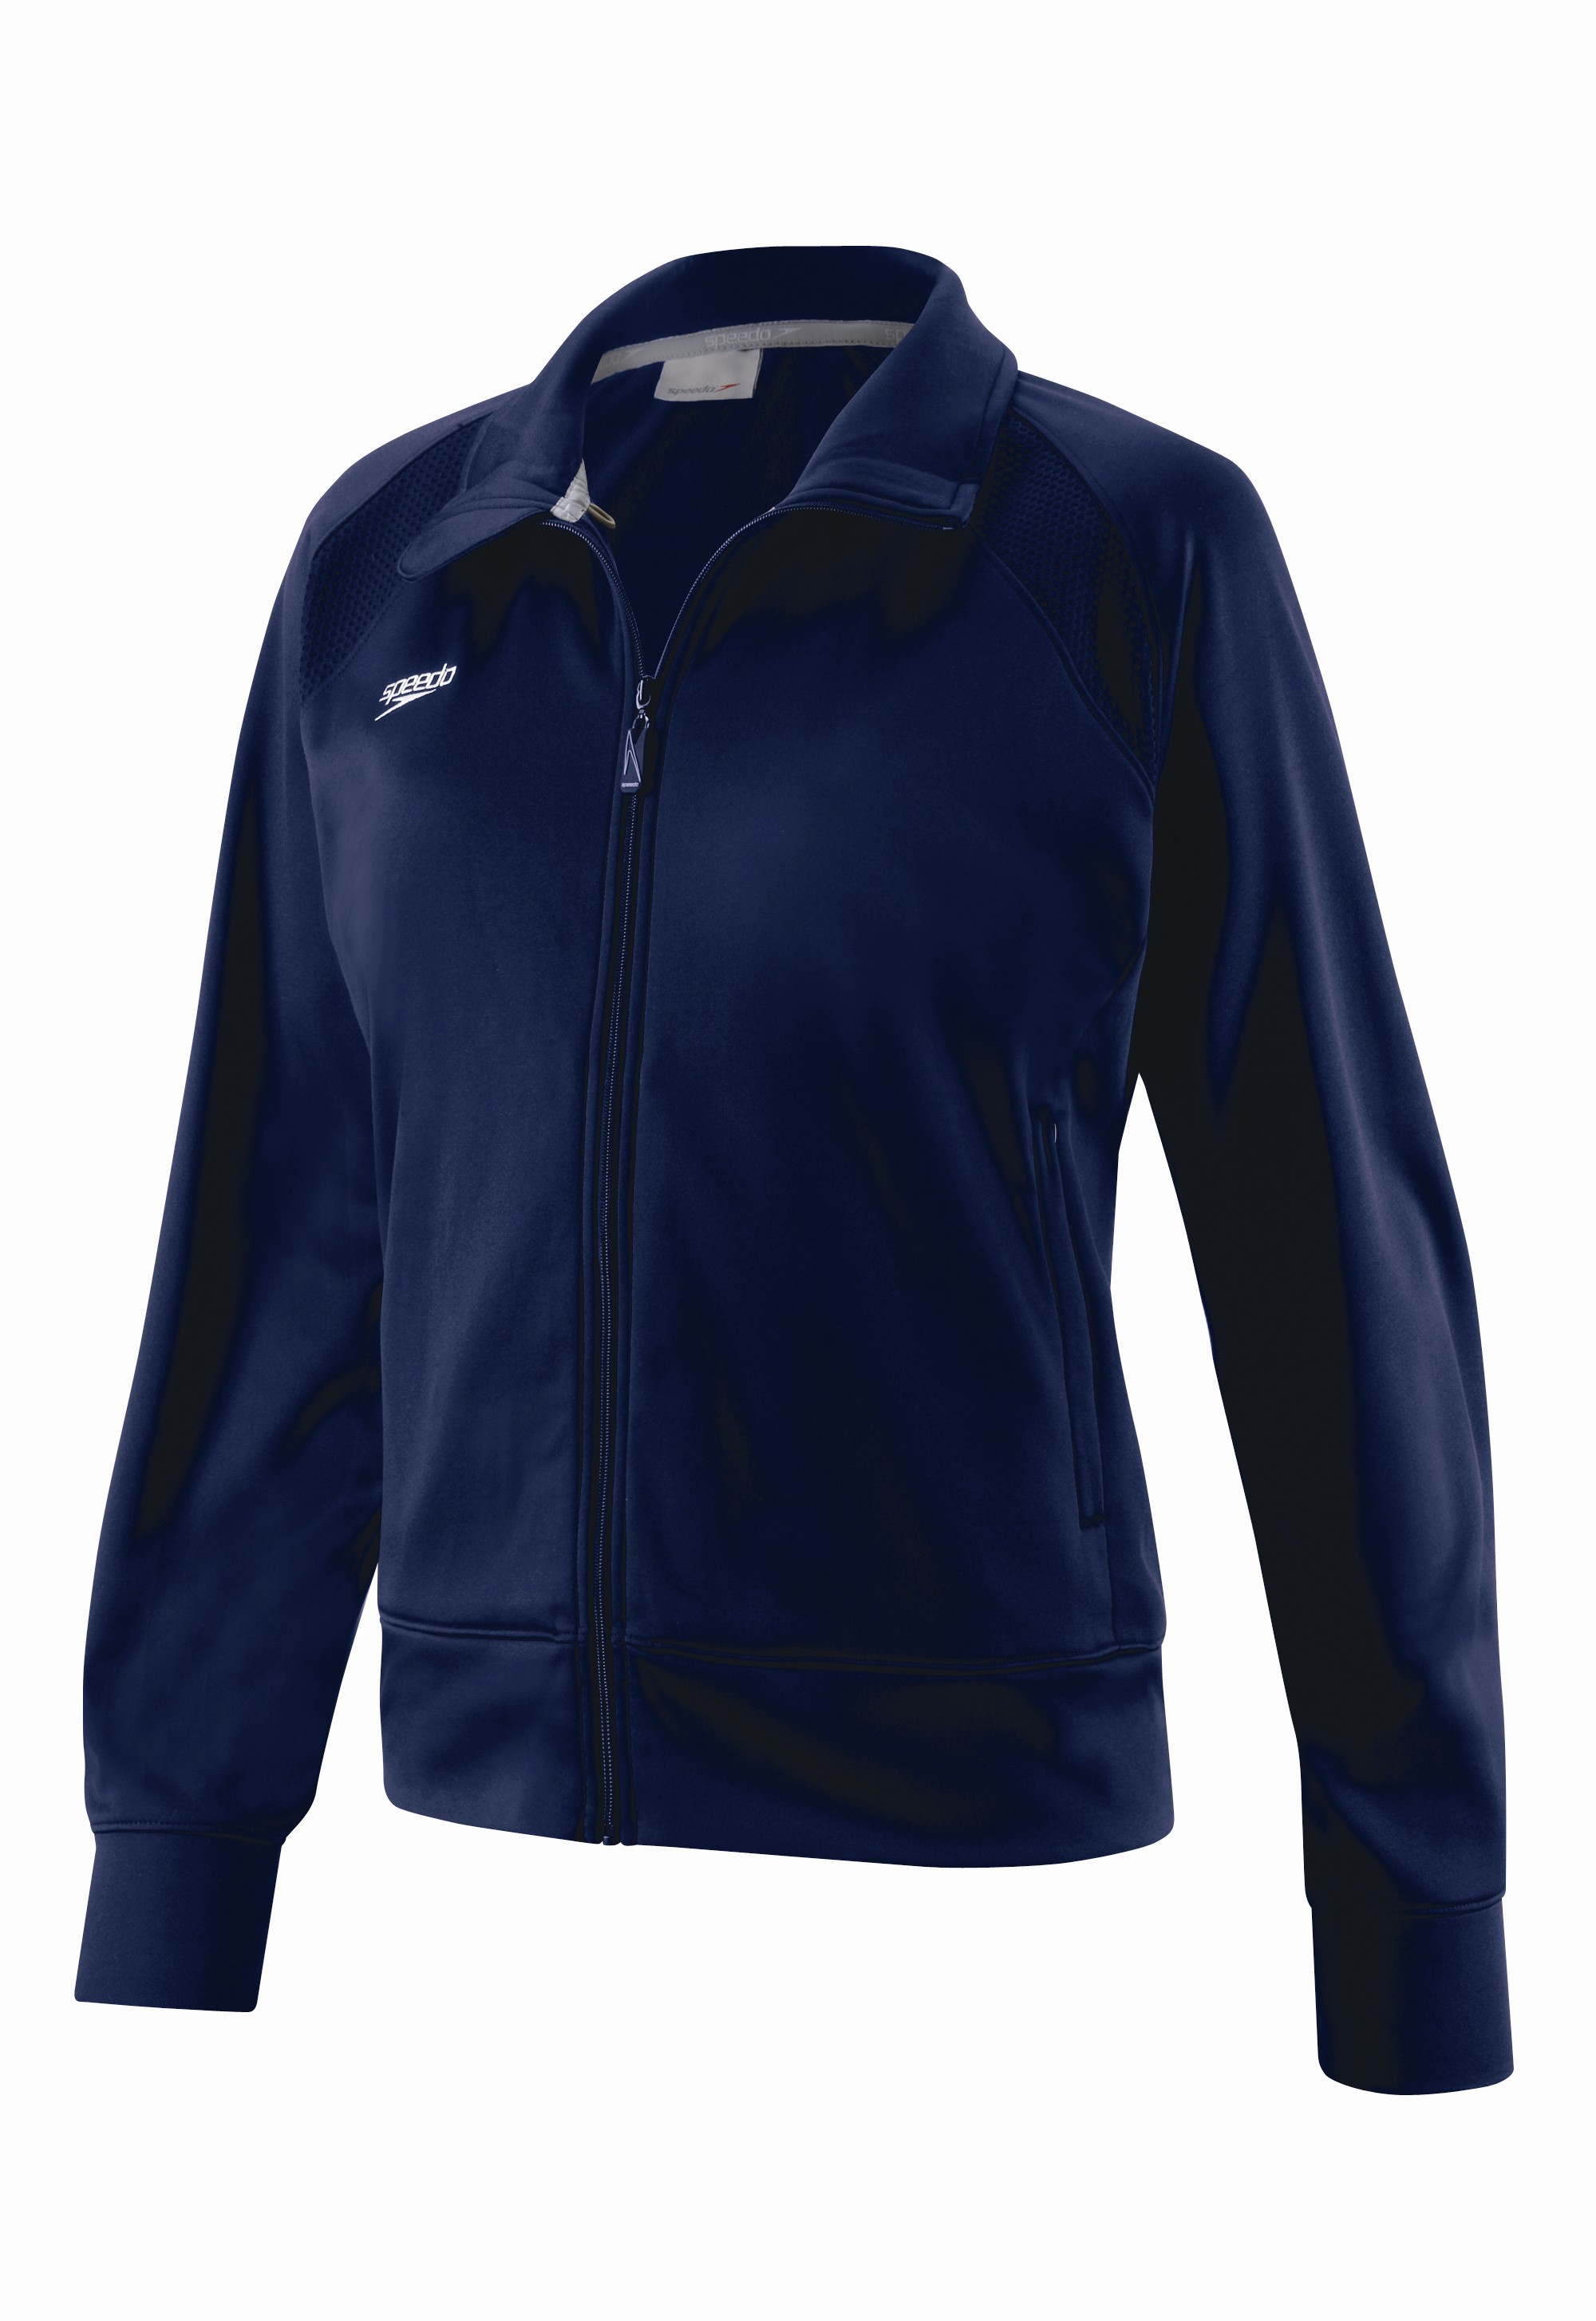 SPEEDO Sonic Warm Up Female Jacket